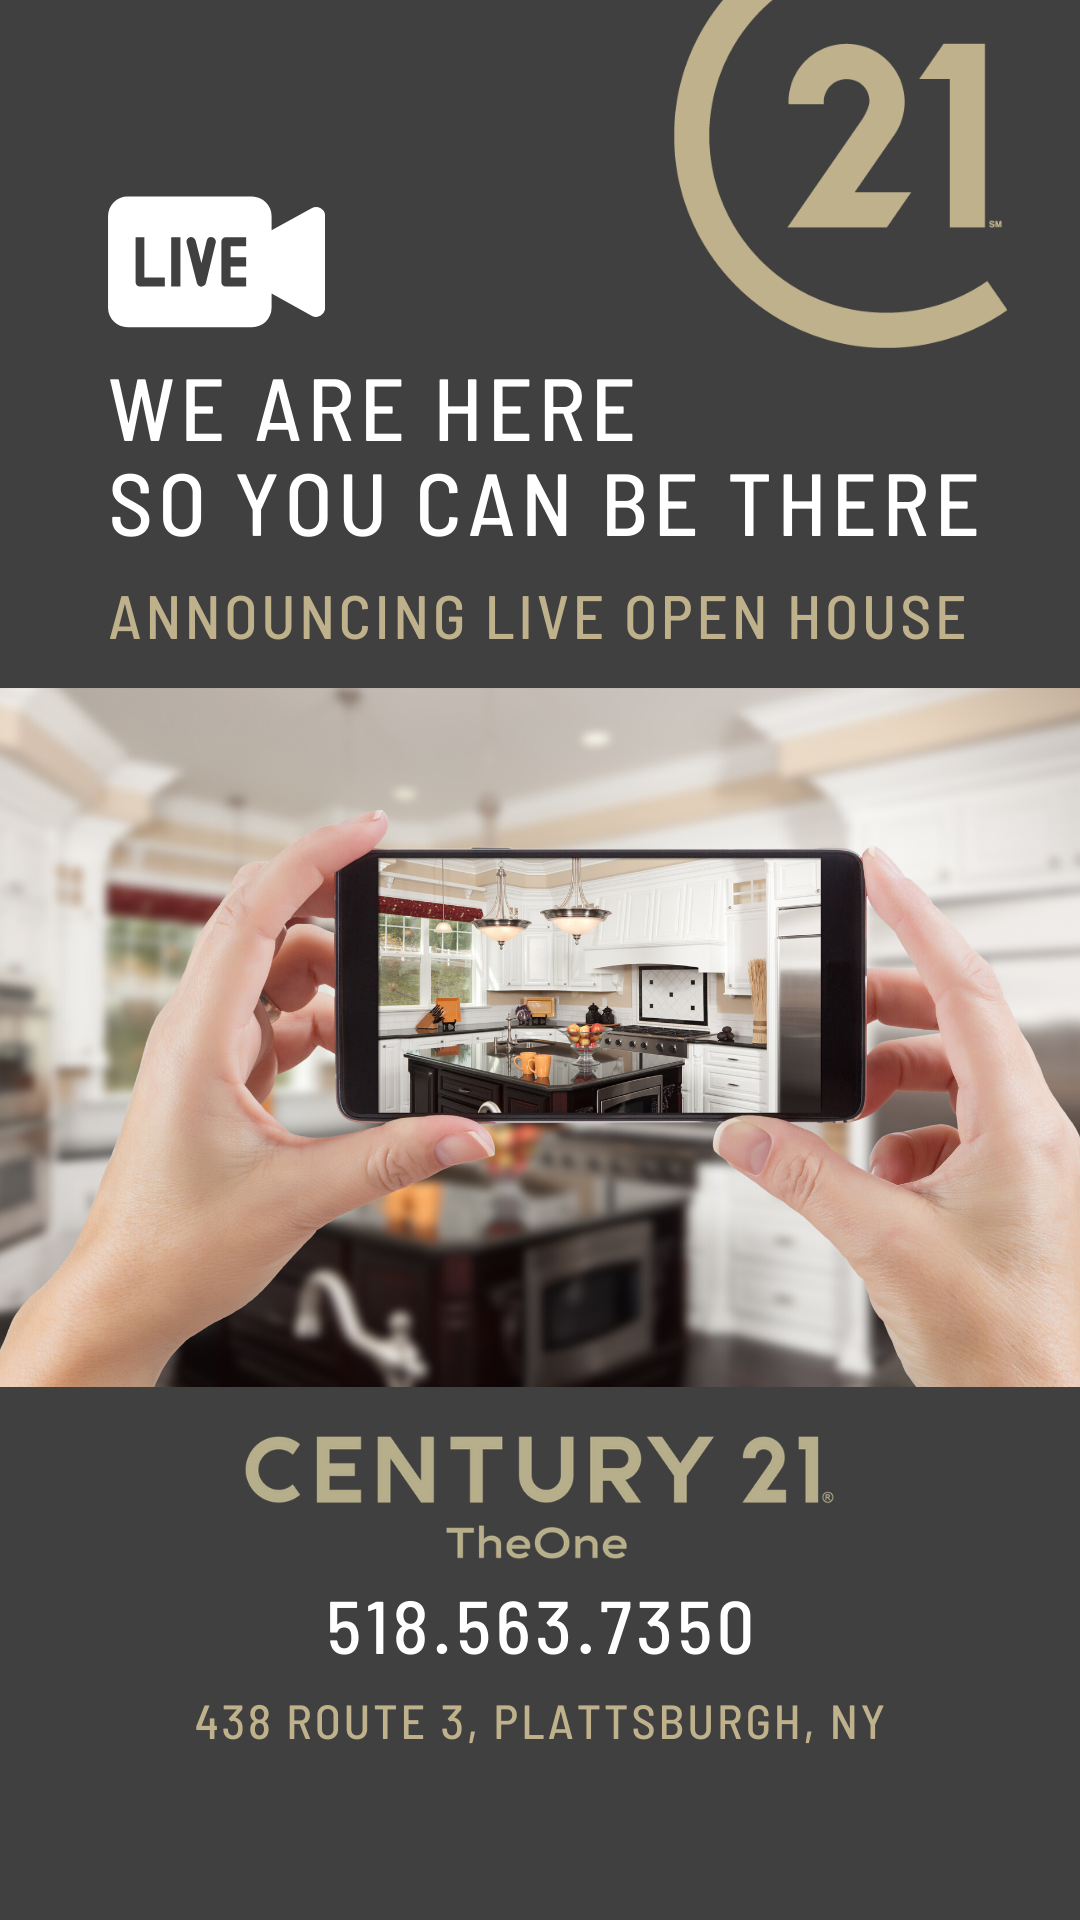 century 21 the one in plattsburgh live open house